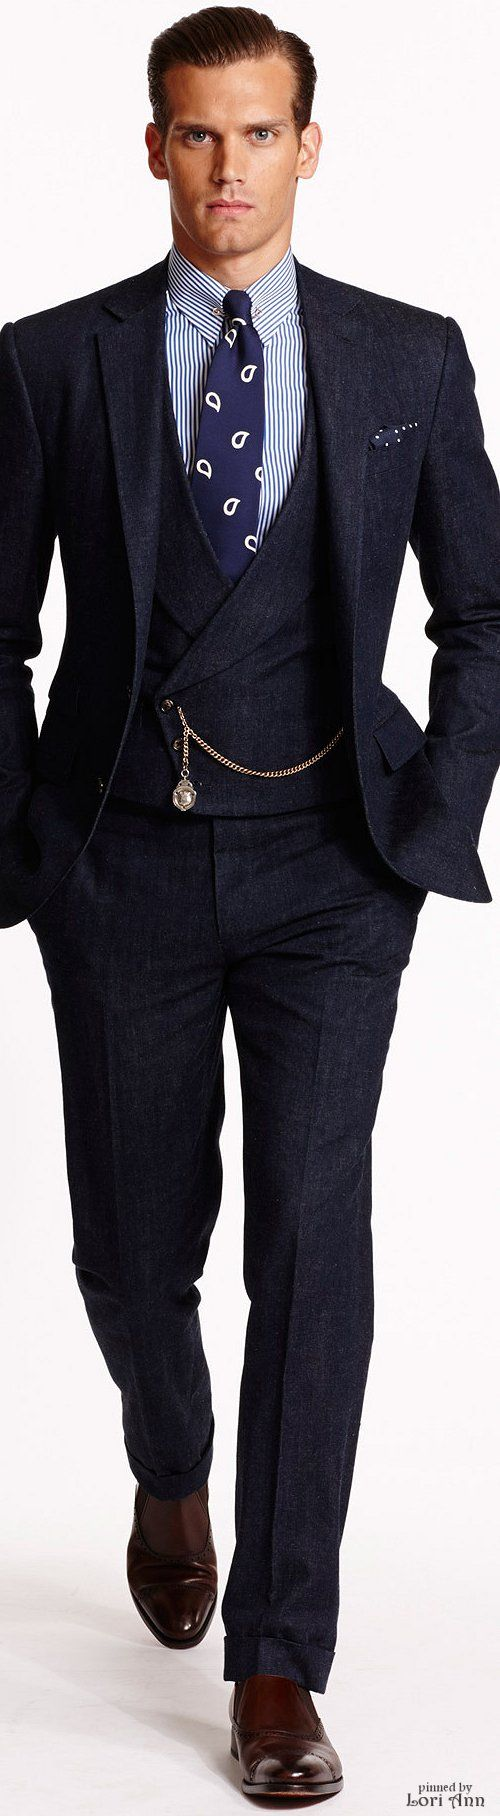 Ralph Lauren 2015 | Menswear | Men's Fashion | Men's Outfit for Spring/Summer | Sharp and Sophisticated | Moda Masculina | Shop at designerclothingfans.com